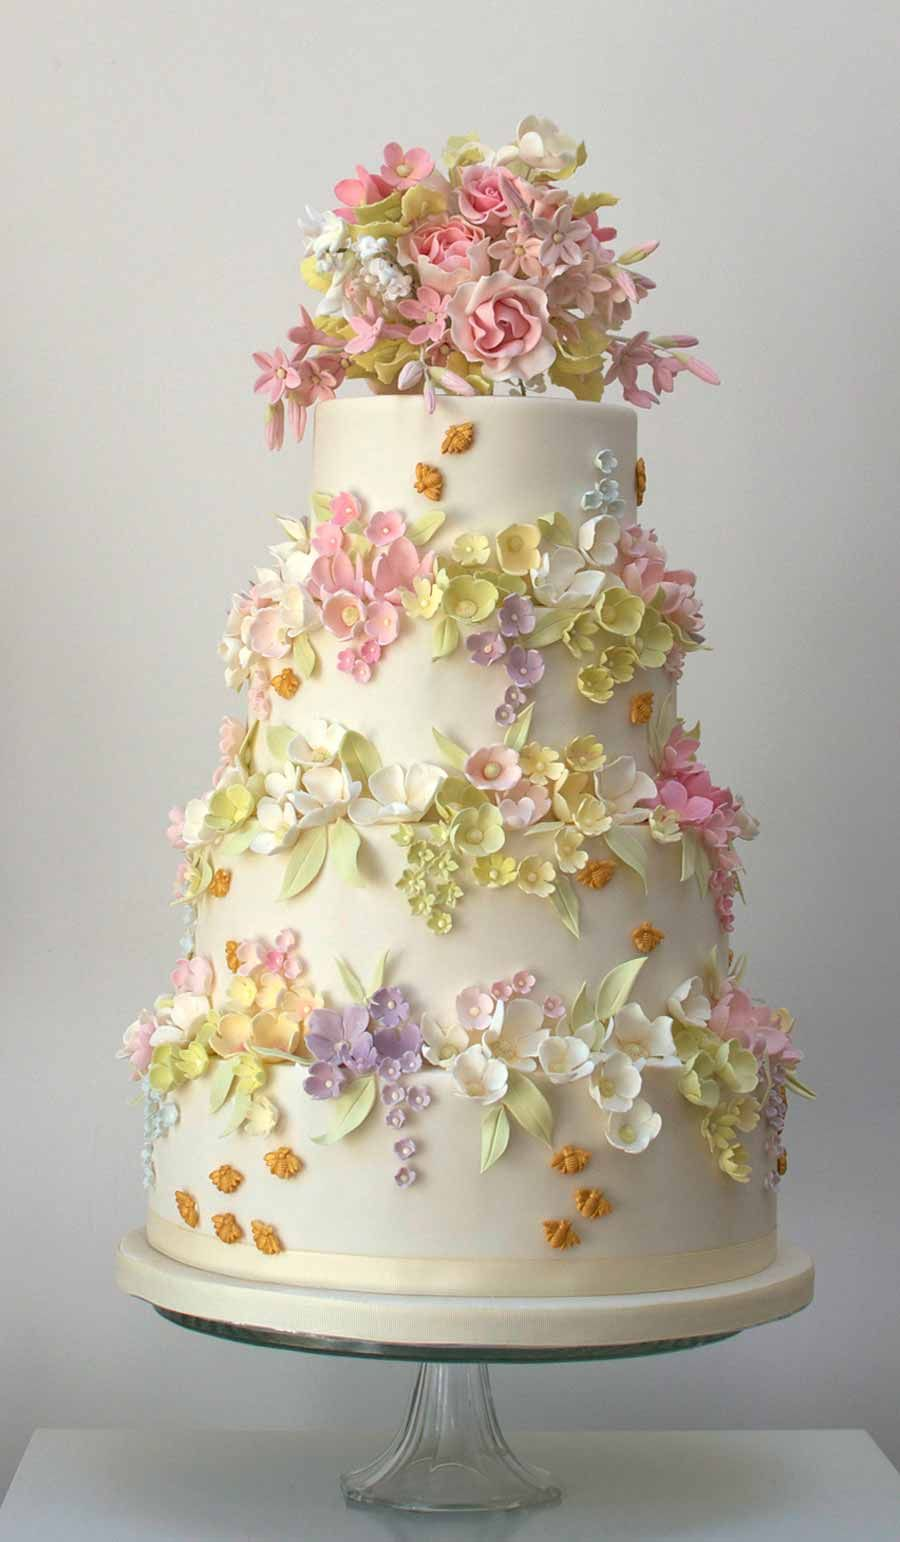 Birthday Cake Pictures Beautiful : most beautiful birthday cakes in the world - Google Search ...